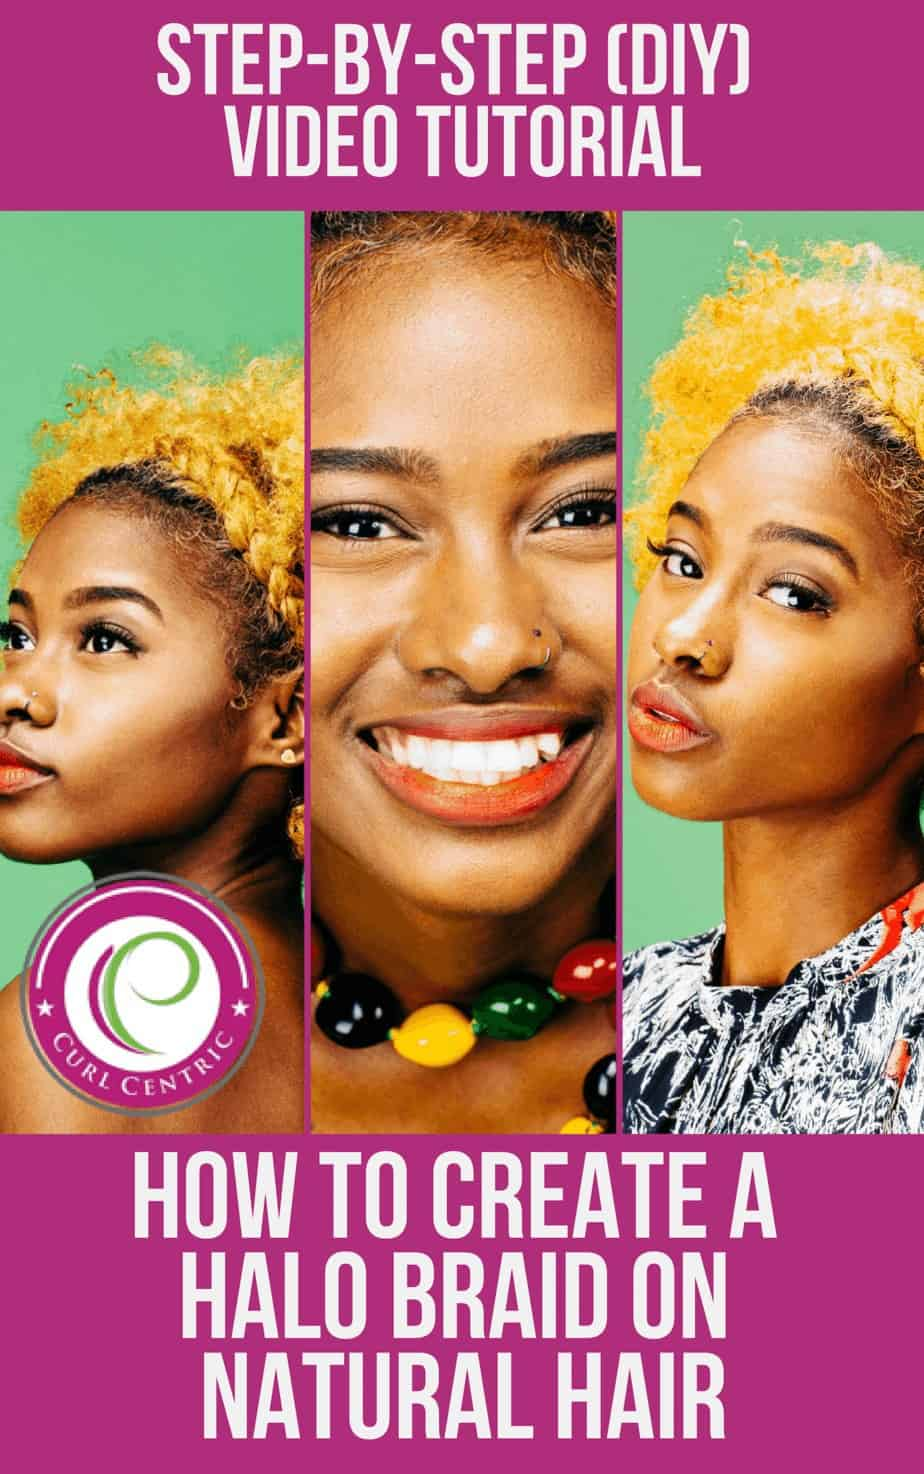 This article includes a step-by-step DIY halo braid video tutorial for black and white women, teens, girls or kids. The braid is similar the dutch braid or crown braid, but it can be completed with weave if you have short natural hair or on straight, wavy, curly and kinky hair types. Also, we've noticed several popular celebrities rocking halo braids lately, so it's going to worn frequently this summer. #halobraid #tutorial #naturalhair #kids #women #weave #black #white #crown #dutch #braids